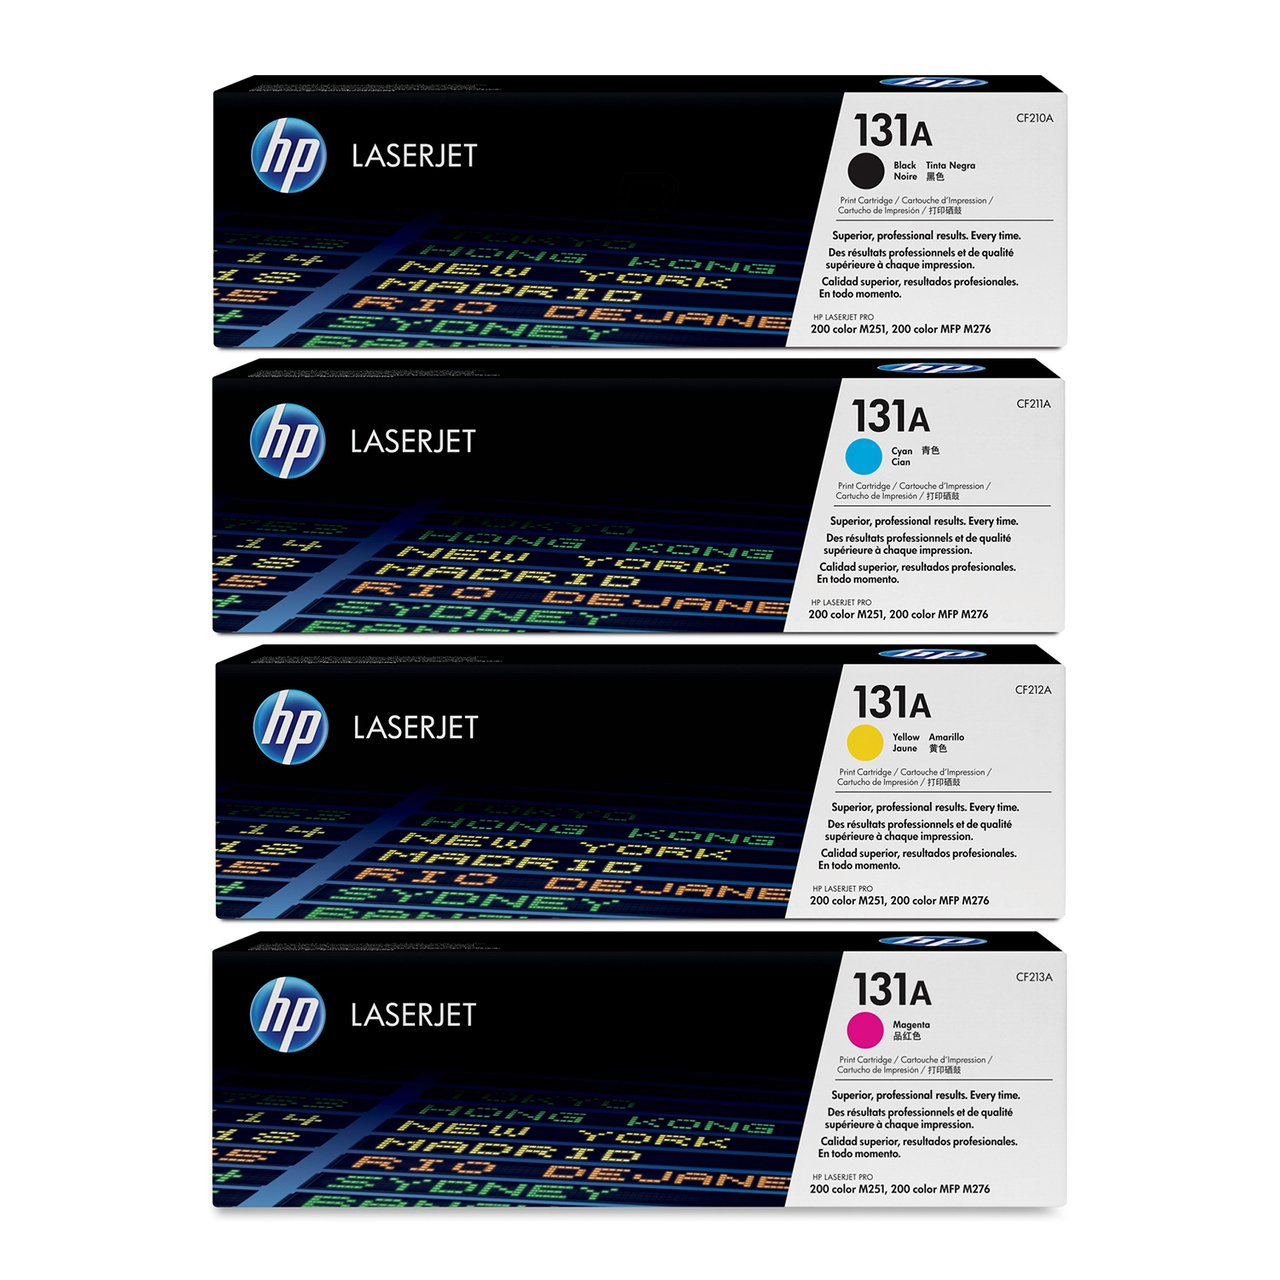 Supply Spot offers a SET of Genuine HP (131A) CF210A,CF211A,CF212A,CF213A Toner Cartridge for Laserjet Pro M251 M276 Printers (Black/Cyan/Magenta/Yellow)